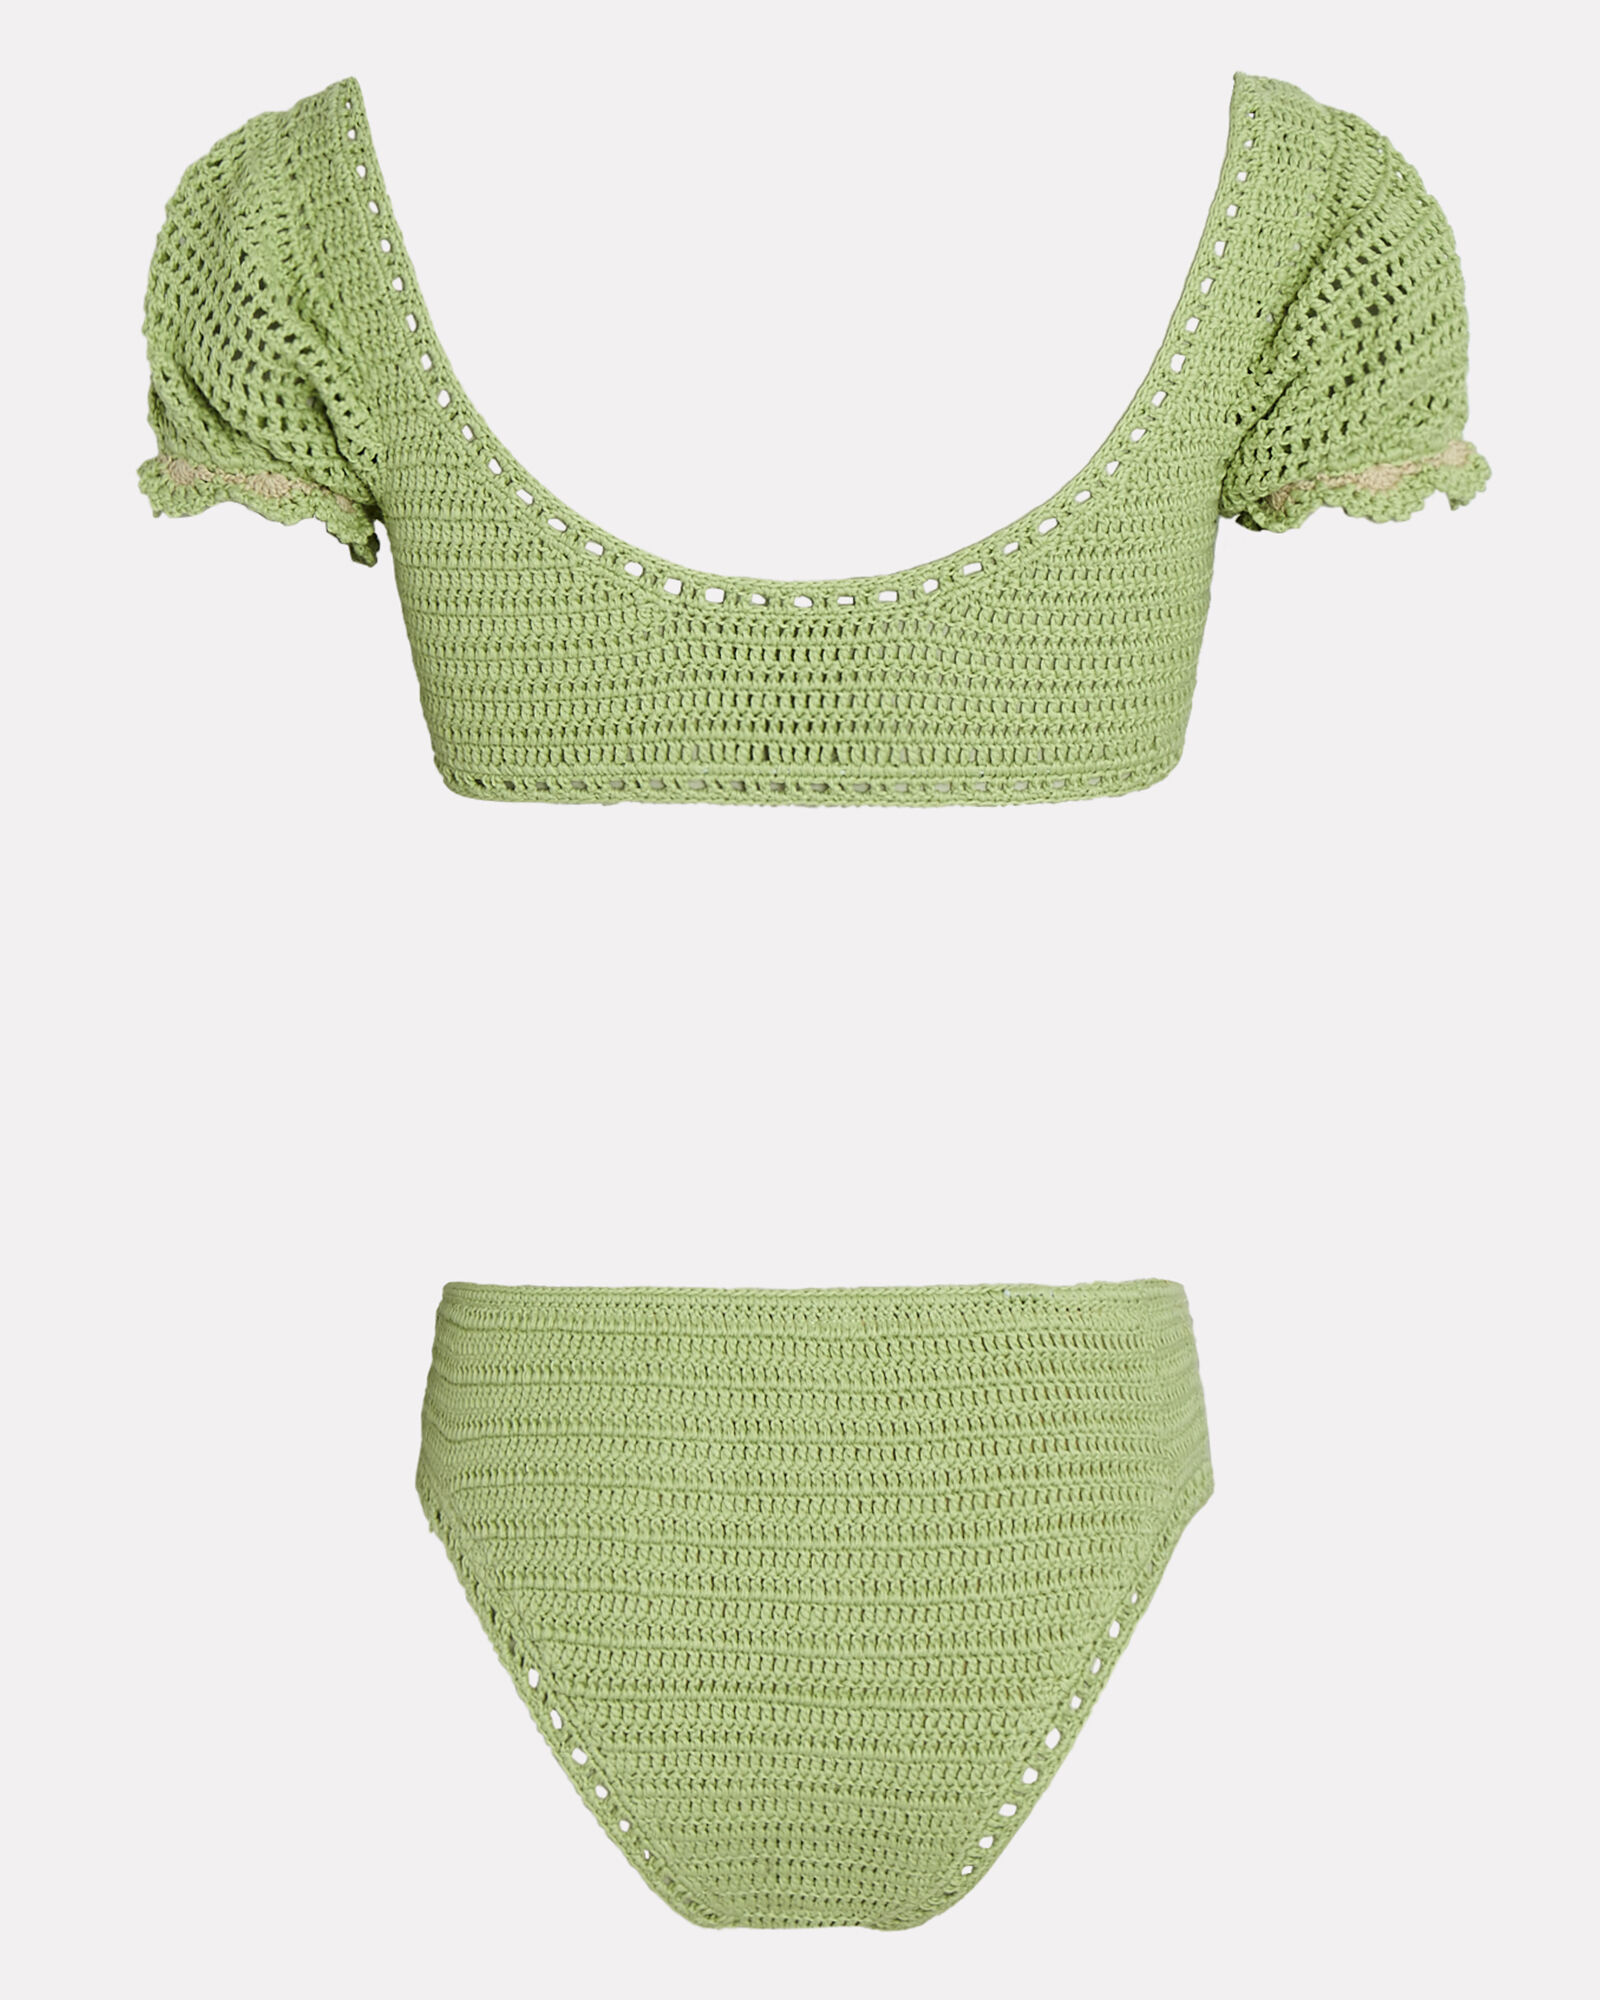 Clara Crochet Bikini Set, GREEN-LT, hi-res